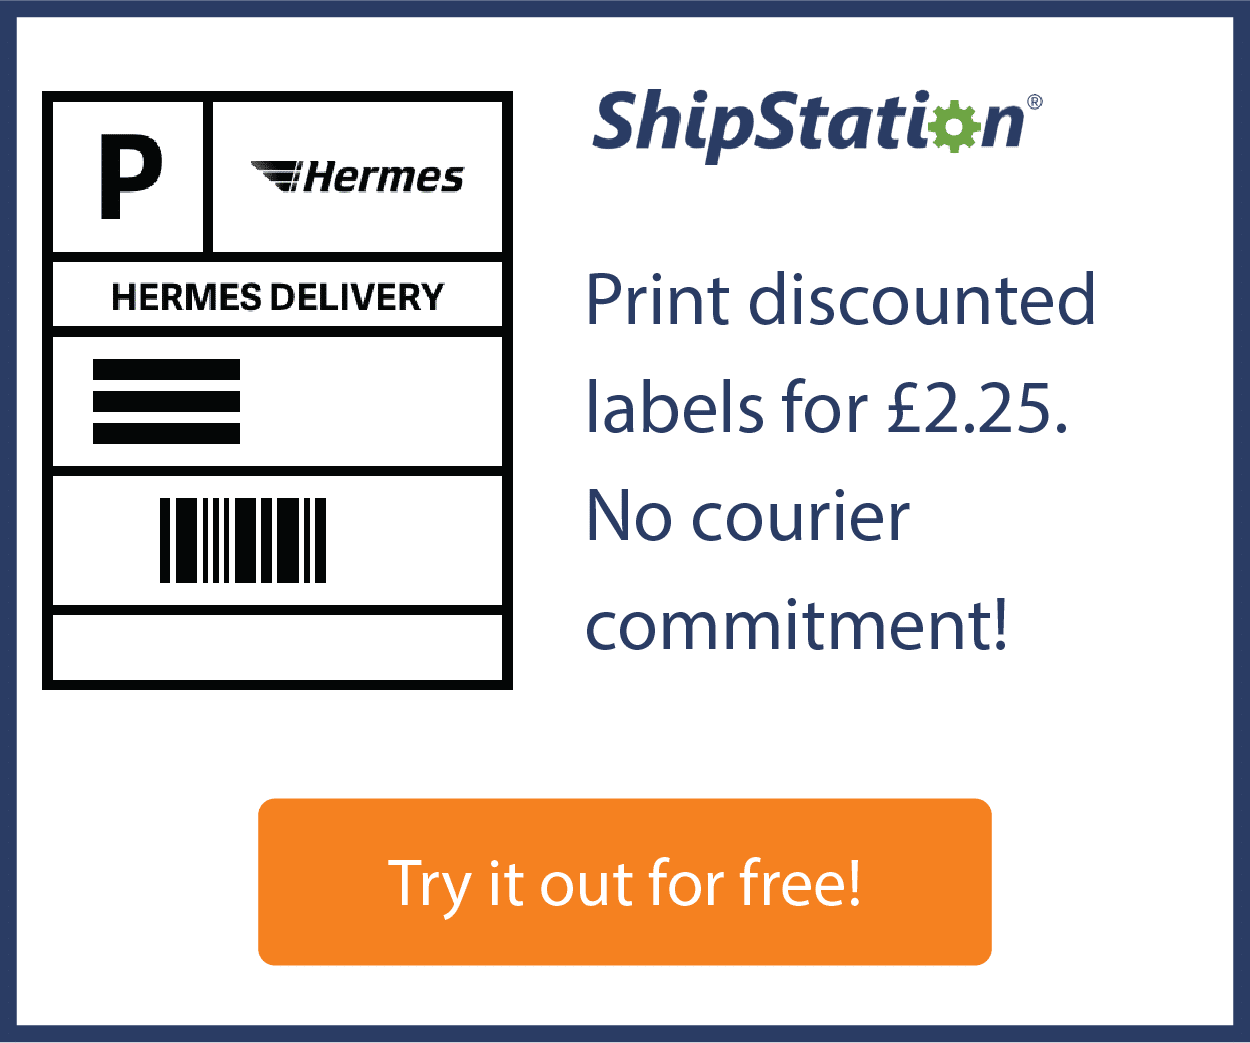 uk_shipping-label-pricing-white_print-discounted_300x250.png